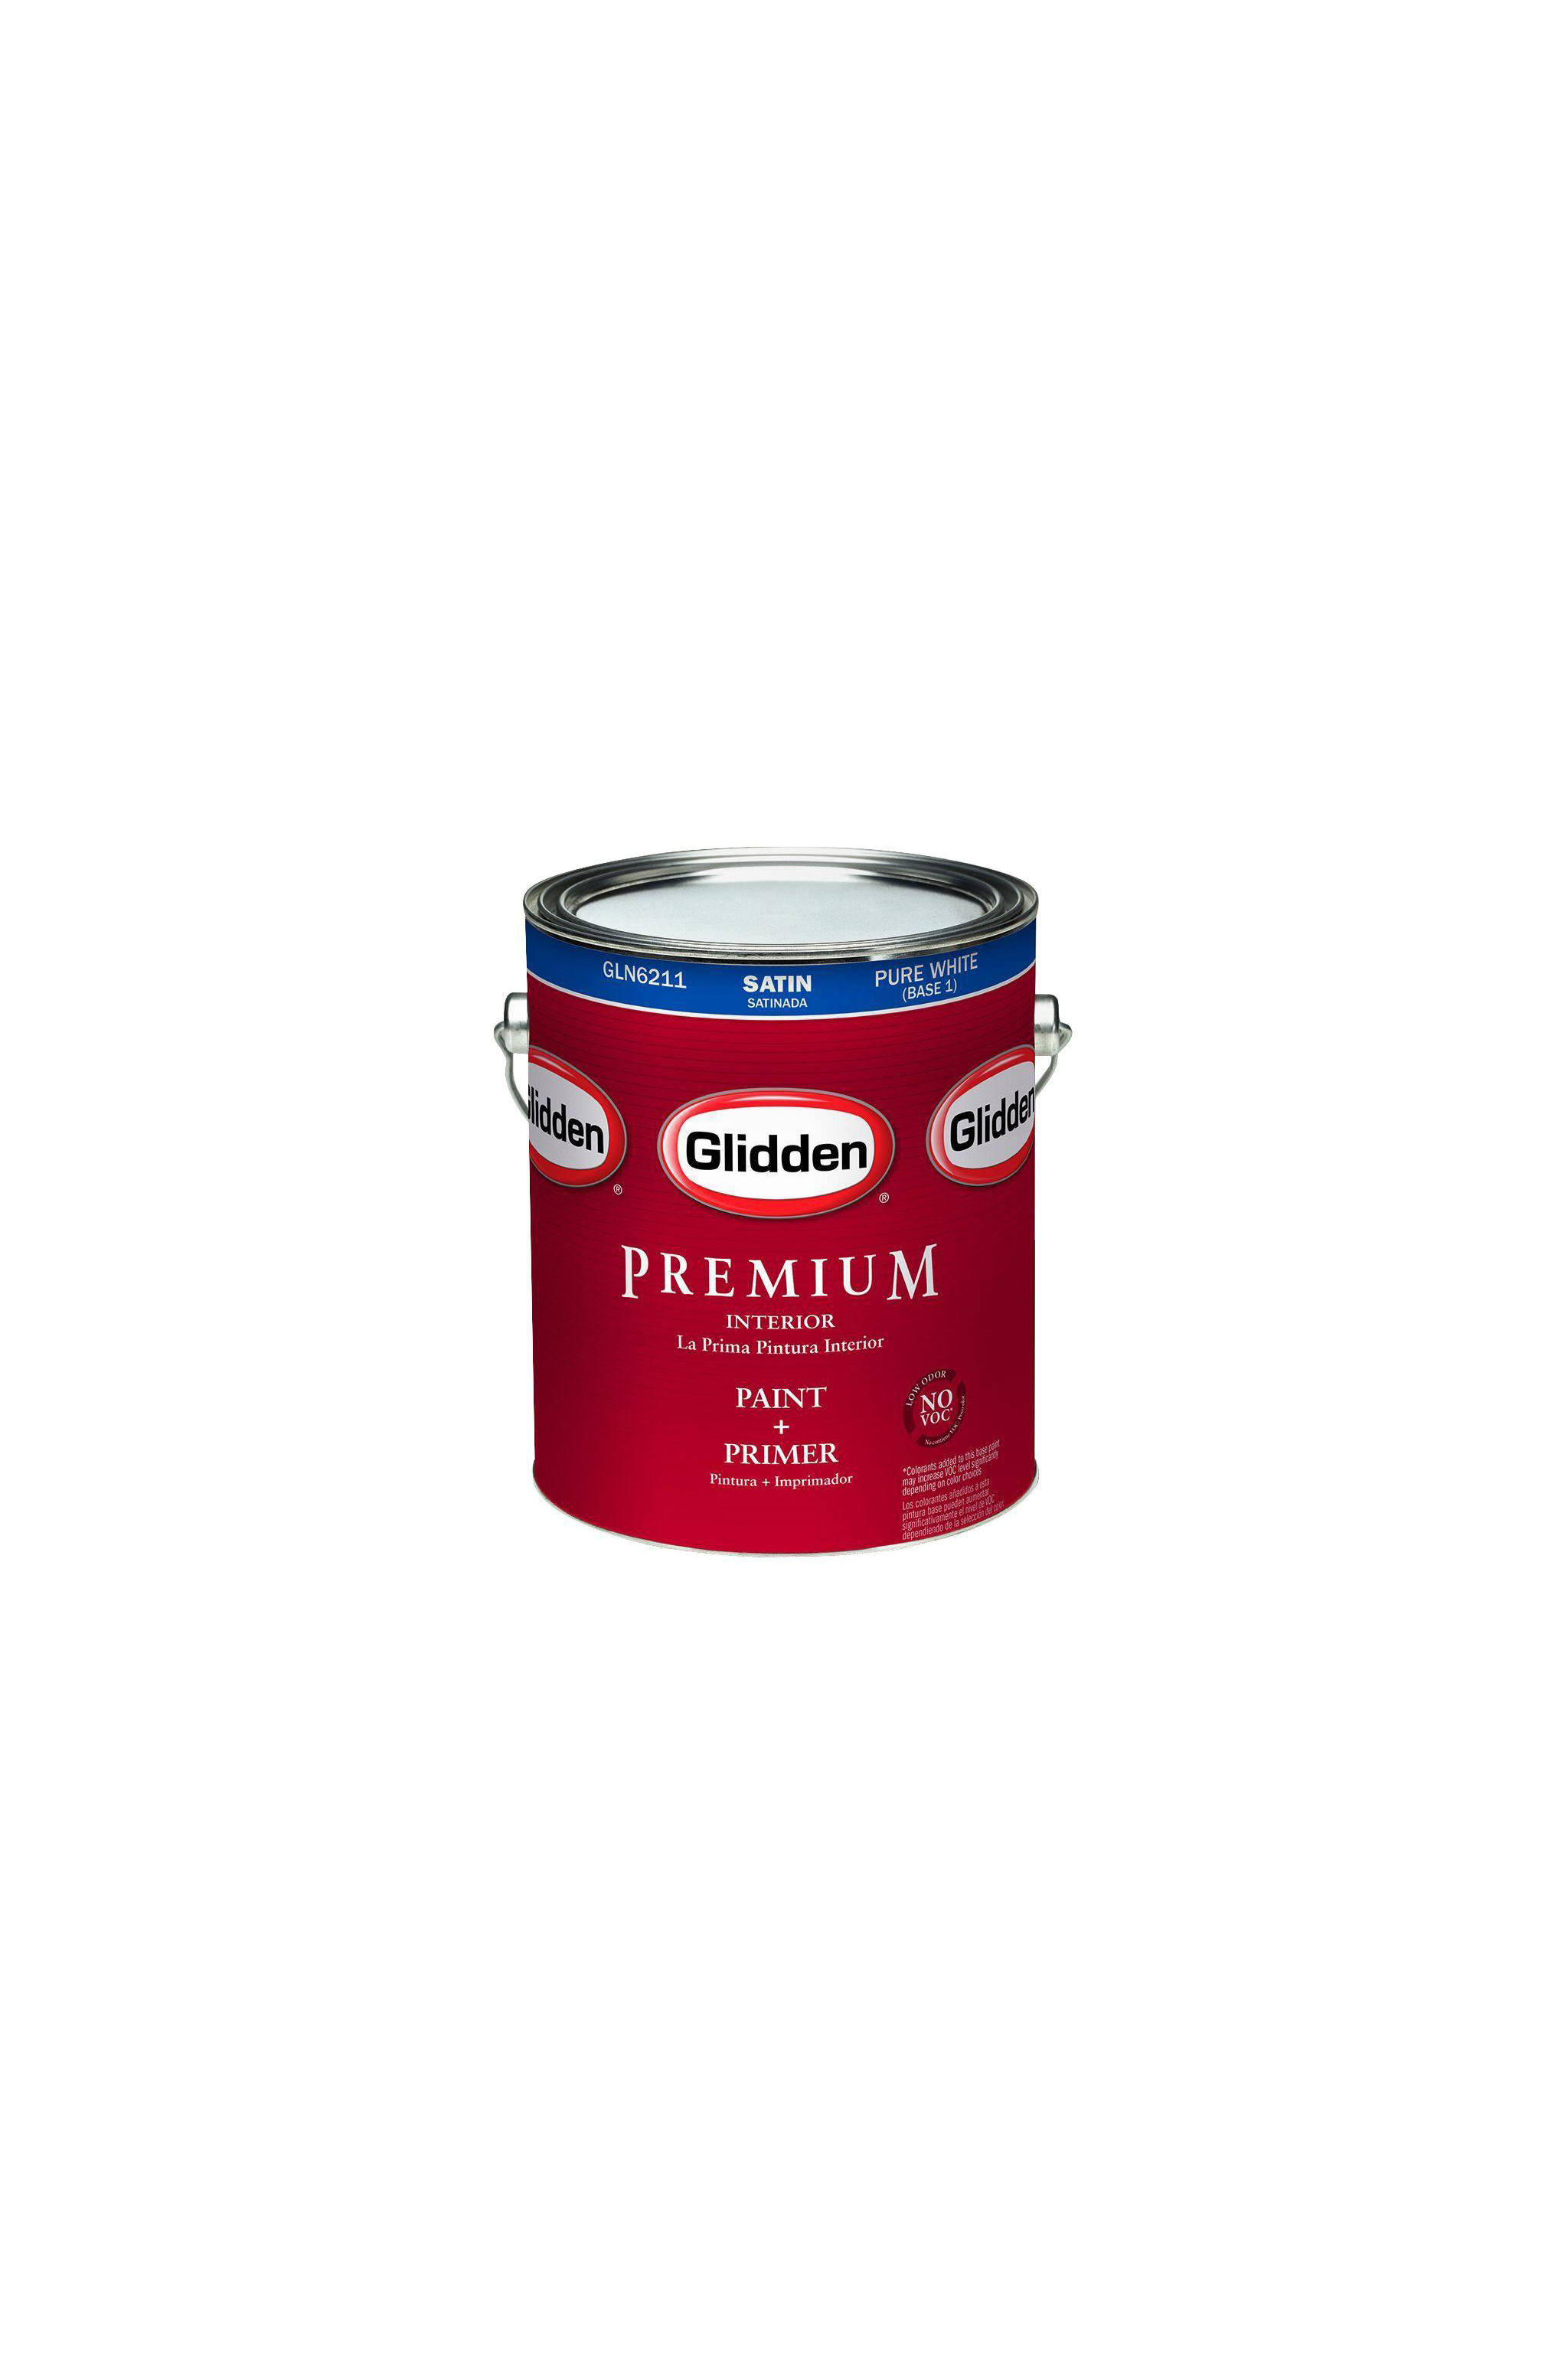 10 best interior paint brands 2018 reviews of top paints - Glidden premium exterior paint review ...